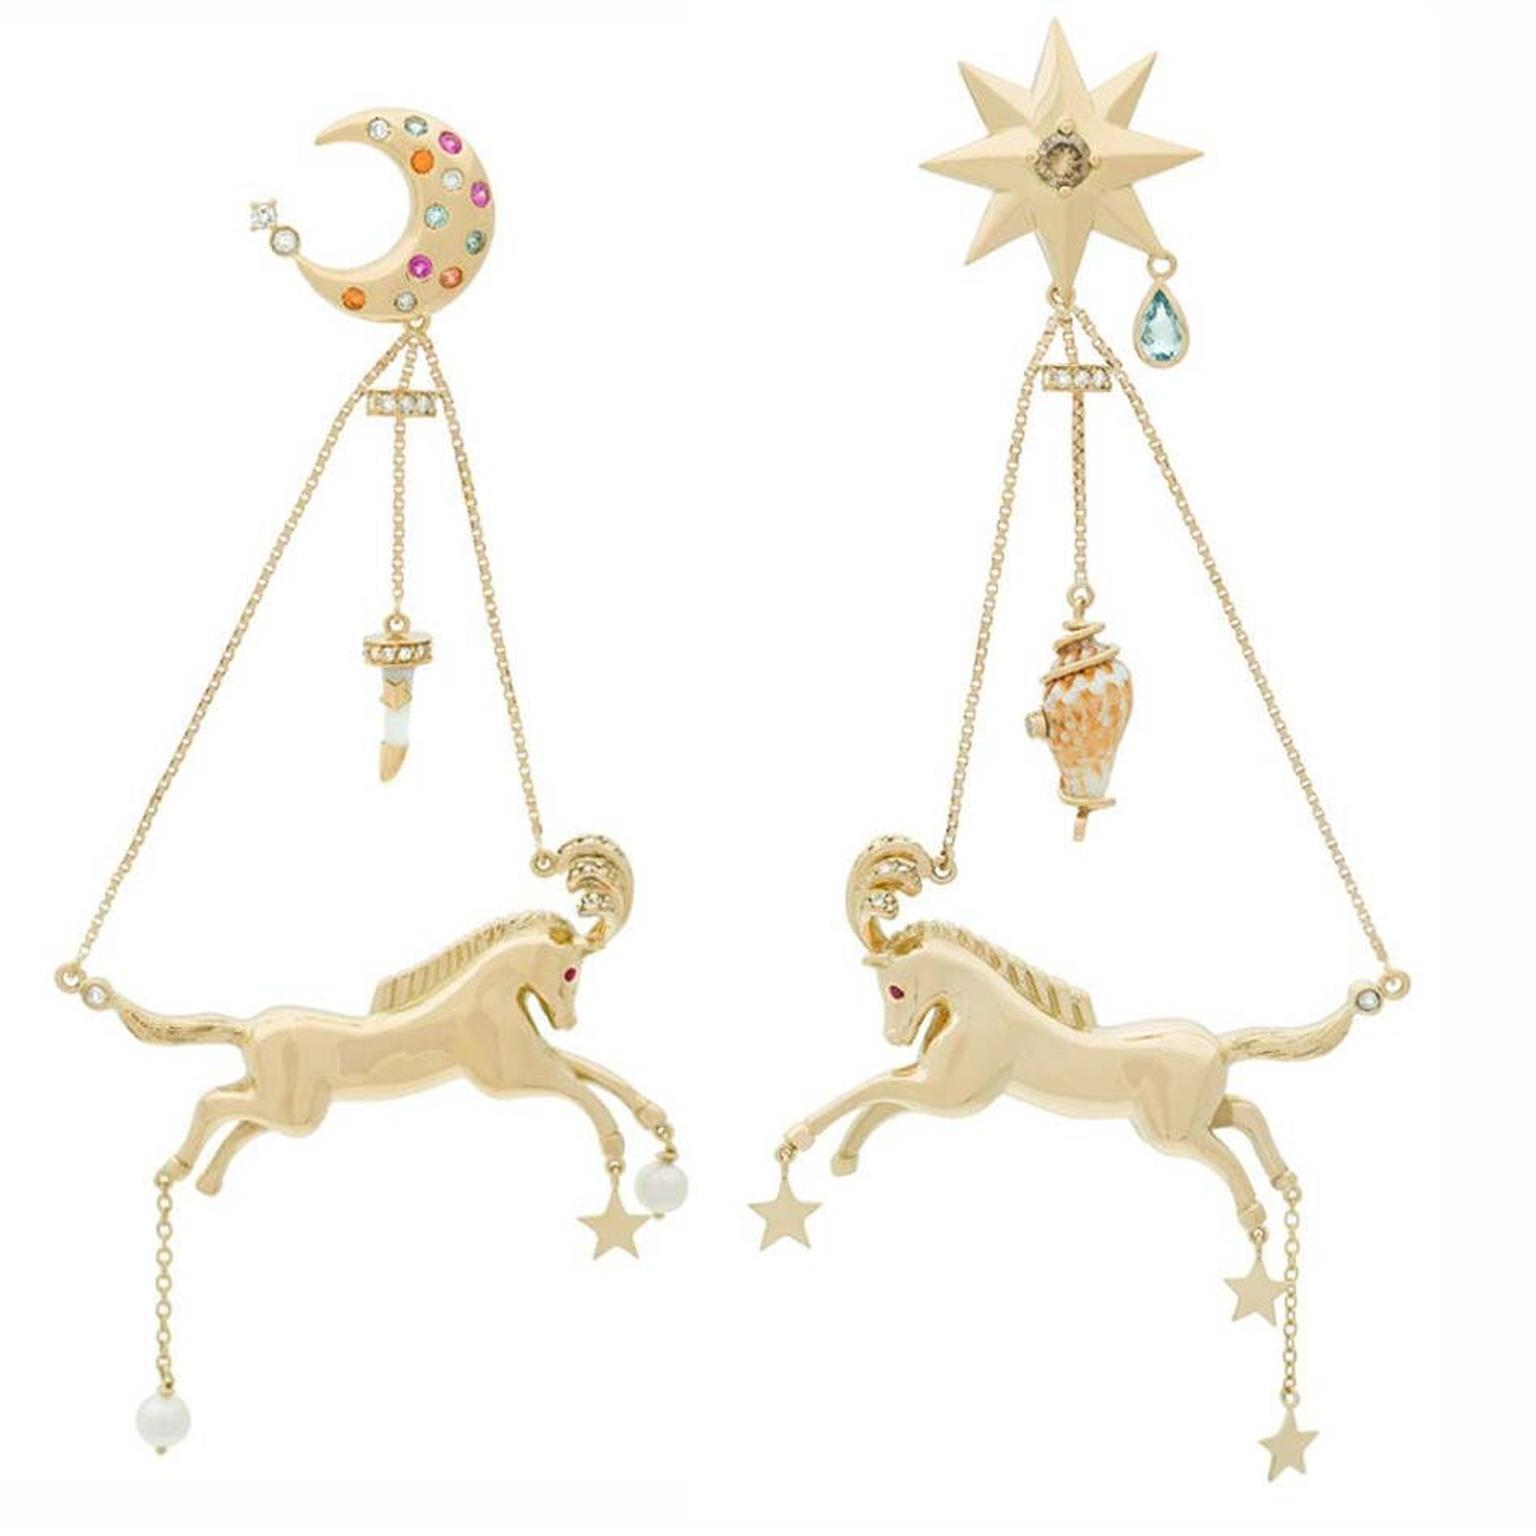 Aron & Hirsch Circus earrings